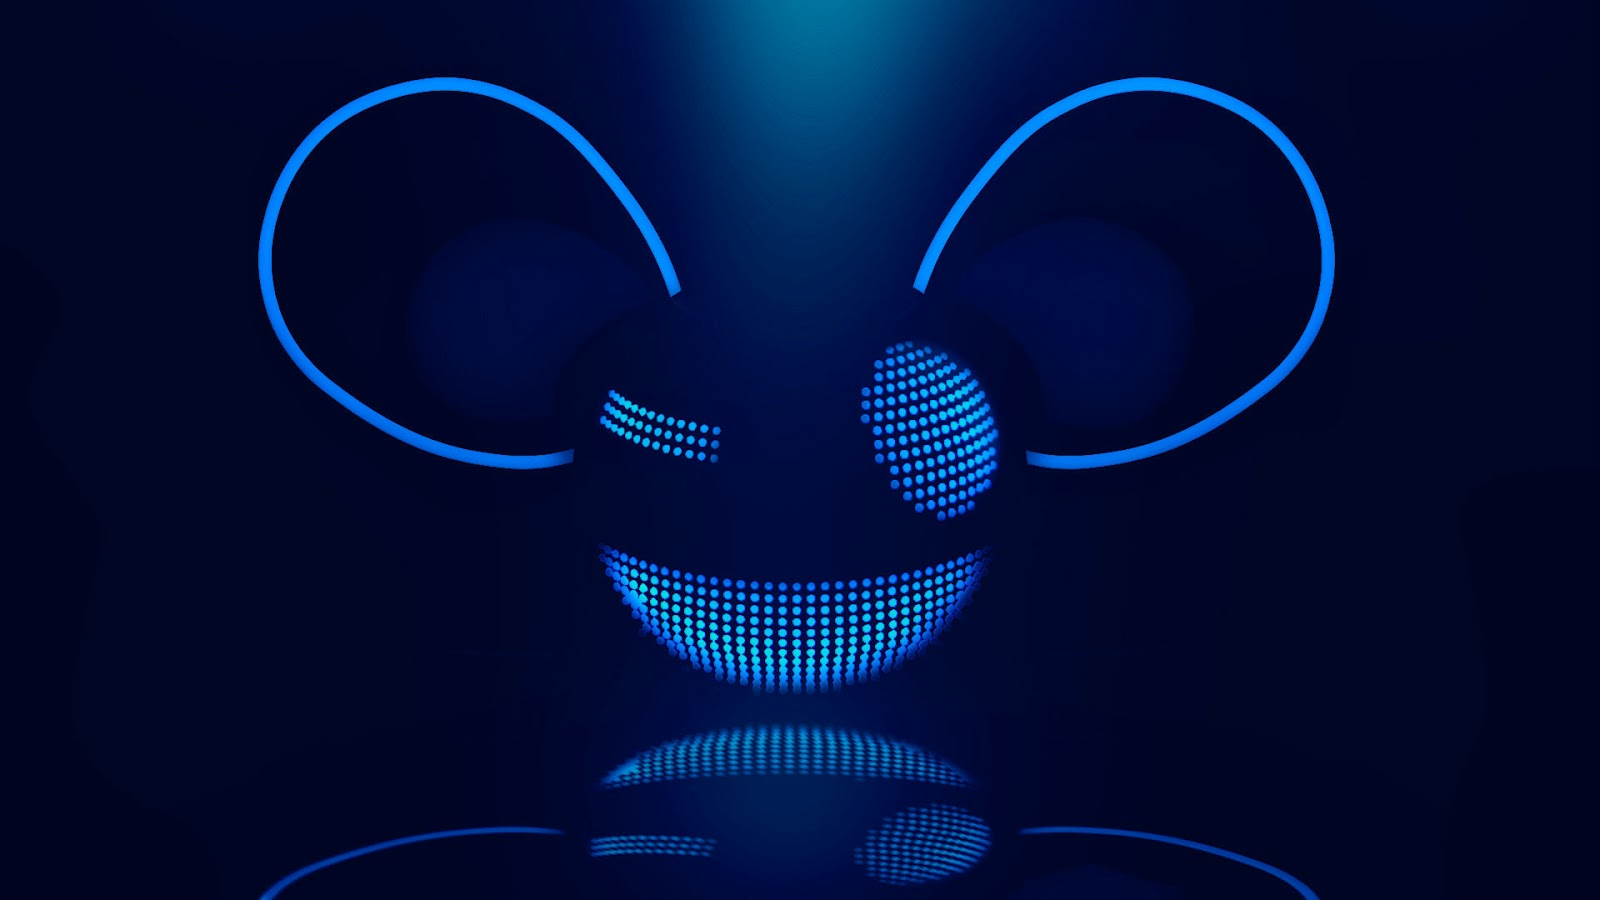 Deadmau5 wallpaper deadmau5 wallpaper for Epic house music